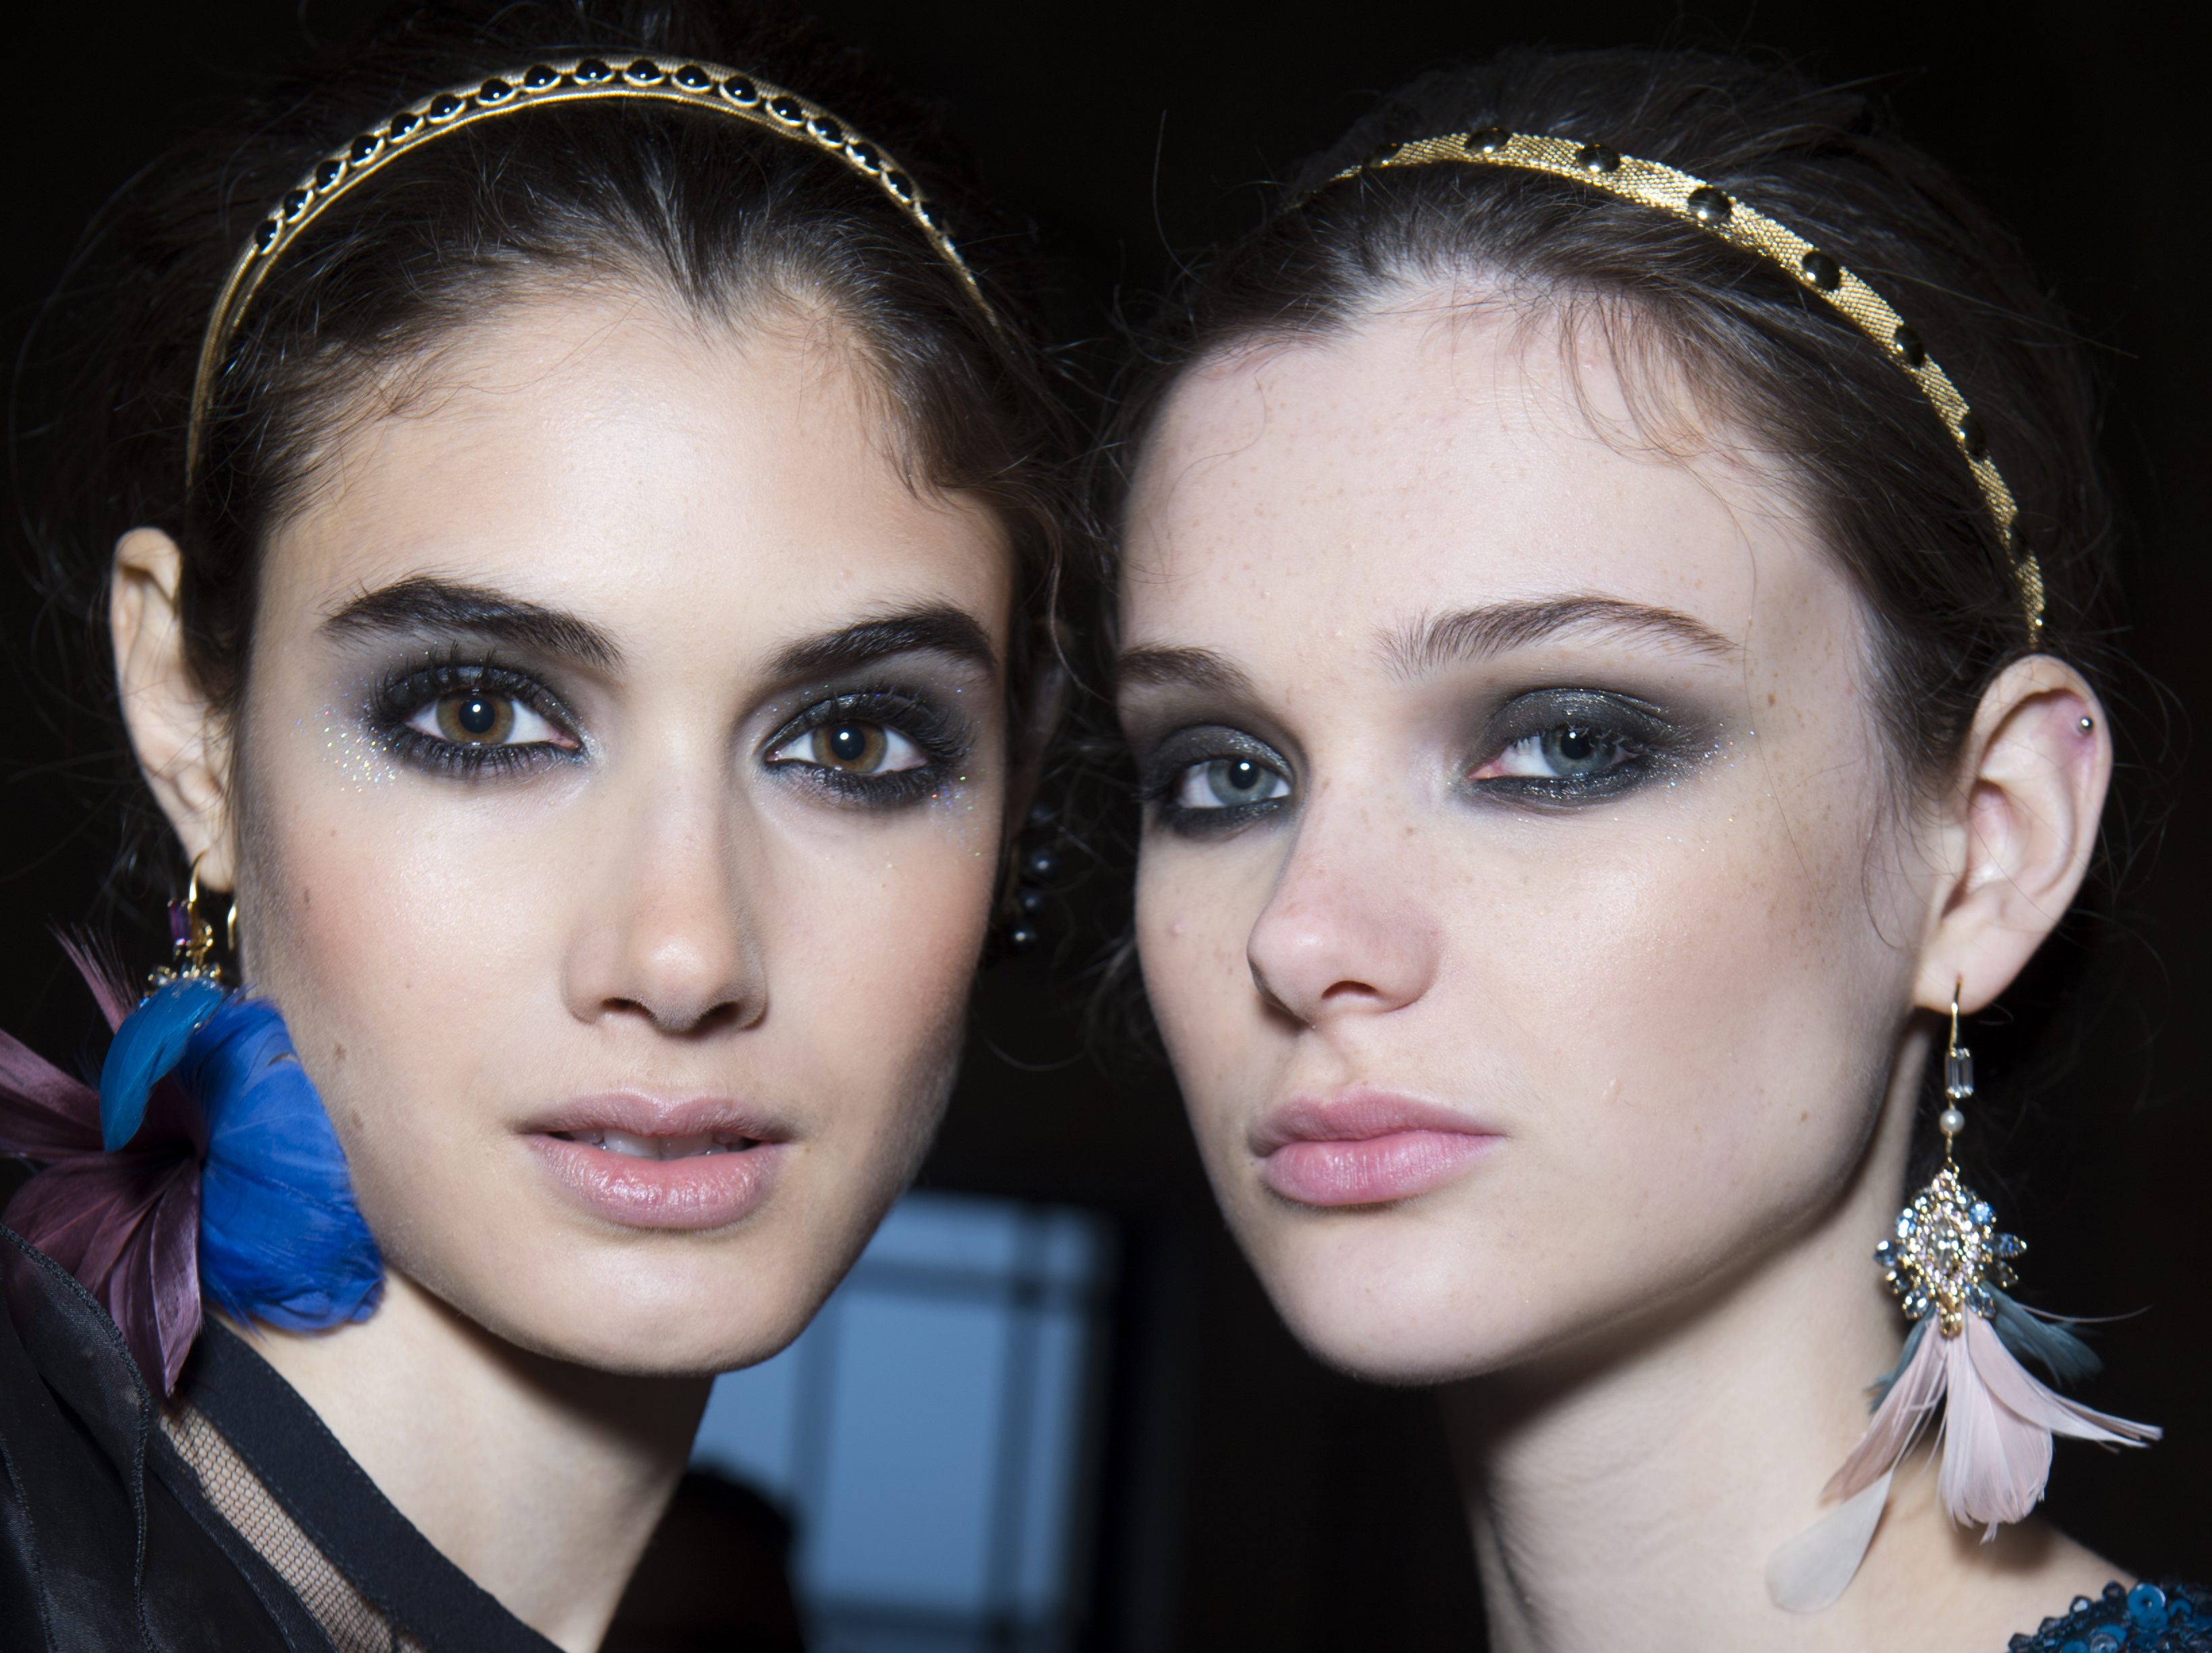 Pewter sparkly eyes spotted at Elie Saab's F/W18 show, created by makeup artist Tom Pecheux with two different glitters that drift down the cheekbones